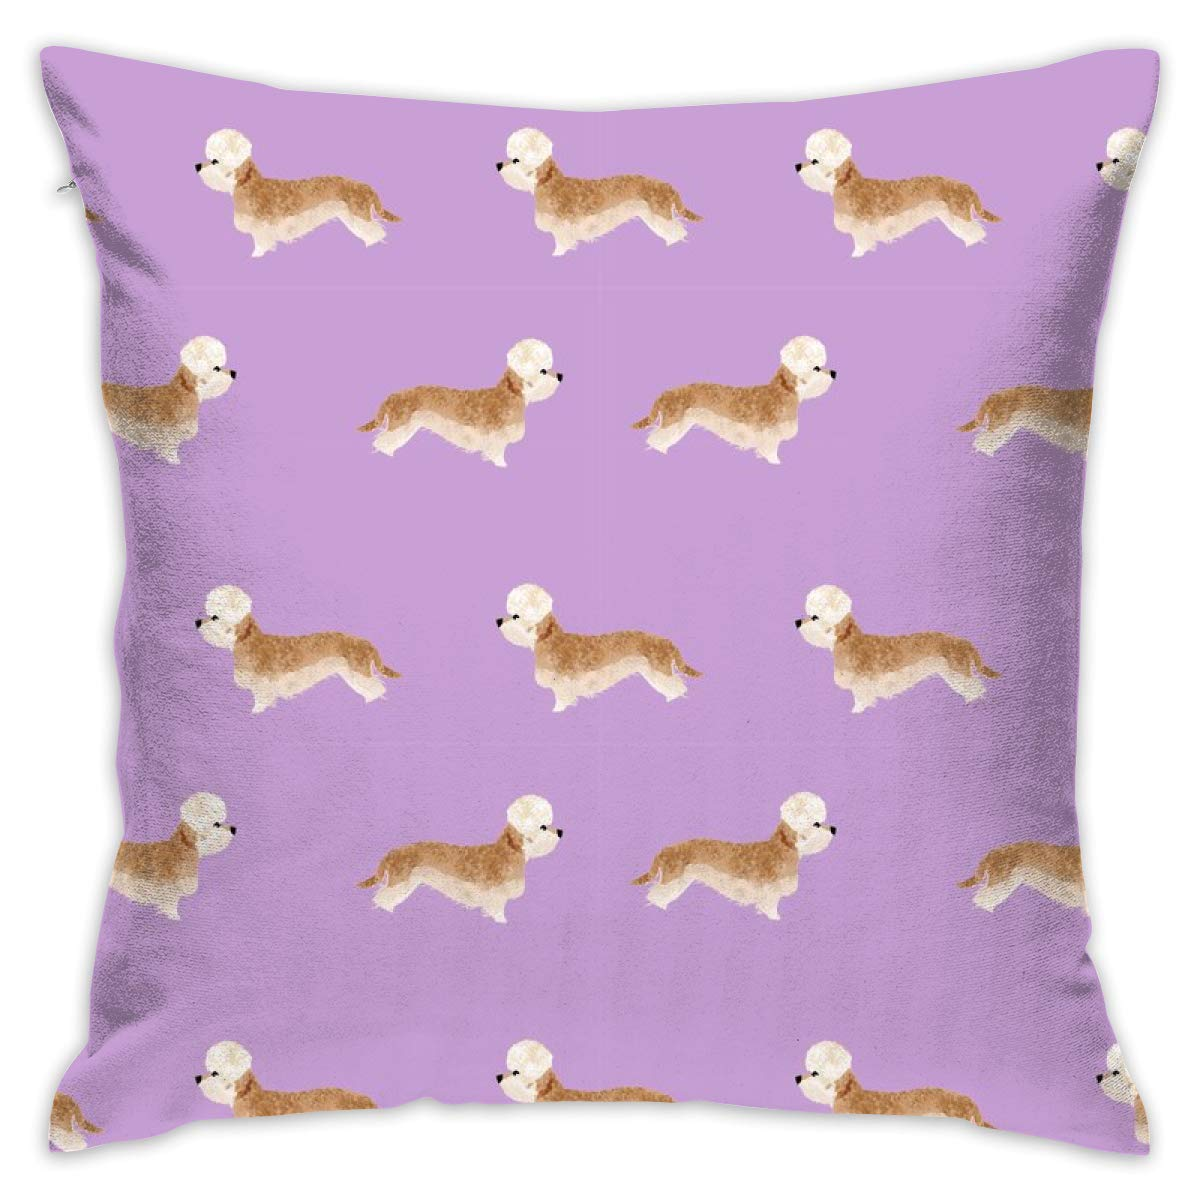 Mabell Beautifully decorated home Dandie Dinmont Terrier – Mustard Dog Coat, Dandie Dinmont Dog, Terrier Dog, Dog Breed – Purple Throw Pillow Case 18X18 Inches